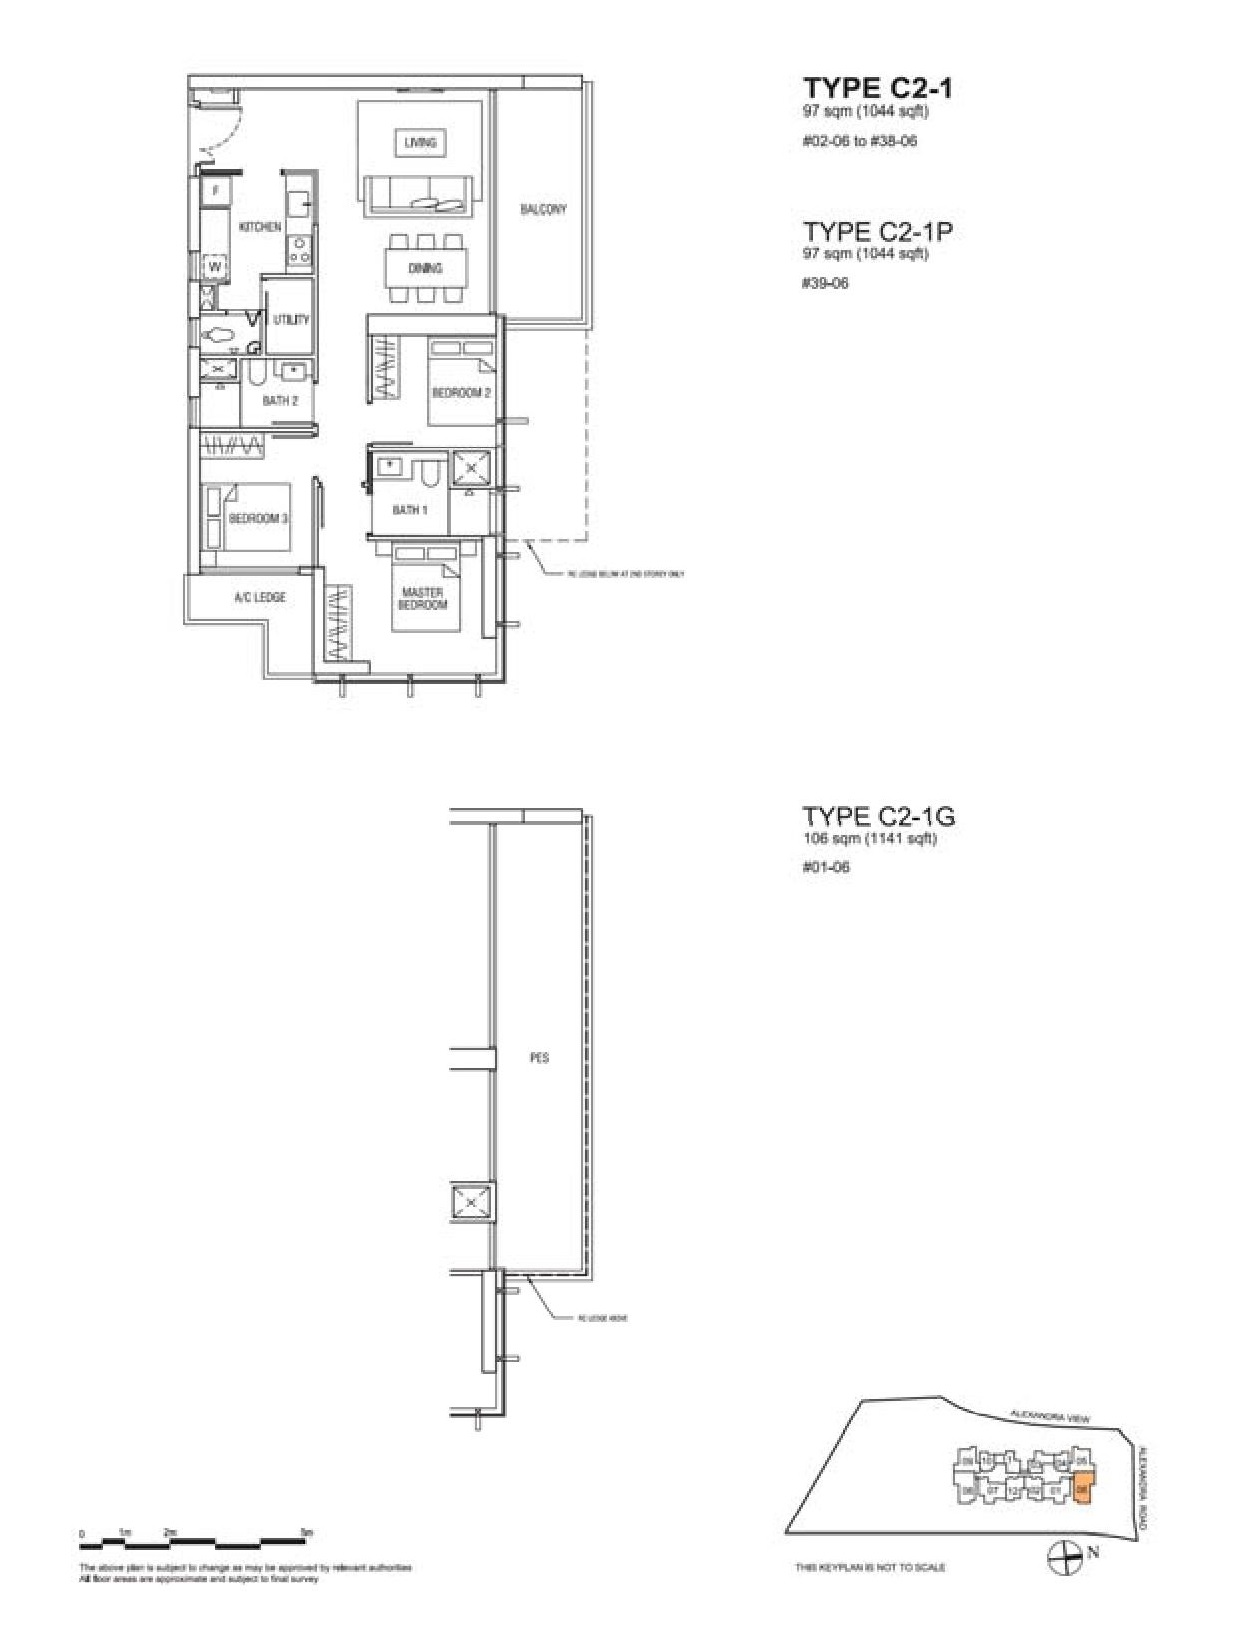 Alex Residences 3 Bedroom + Utility Floor Plans Type C2-1, C2-1P, C2-1G